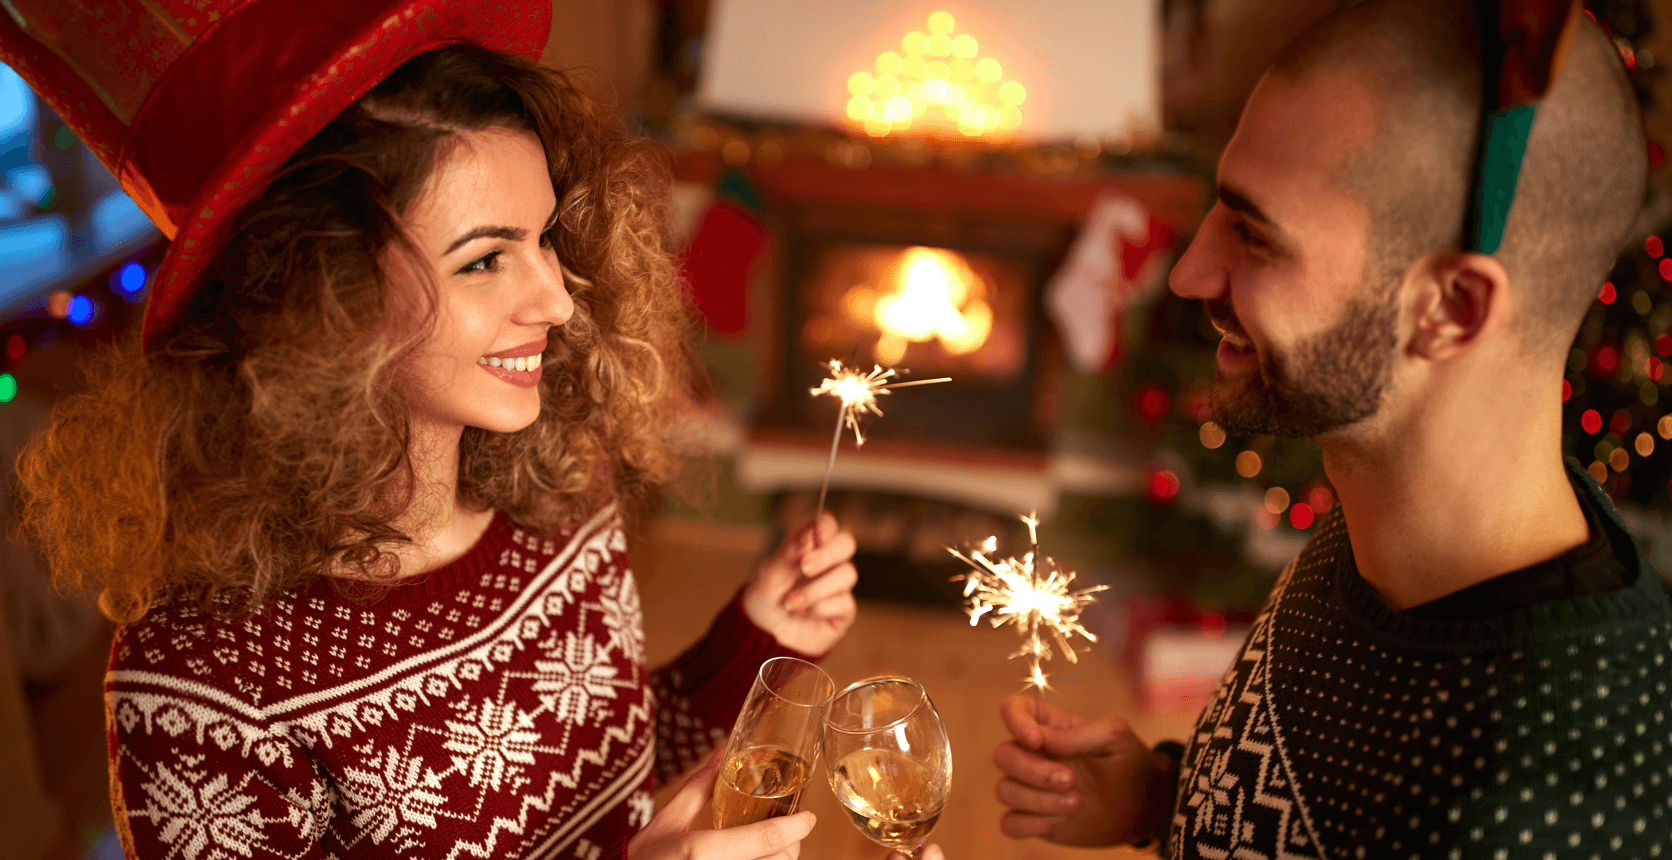 7 Fun Ways to Celebrate New Years at Home Couple Featured Image